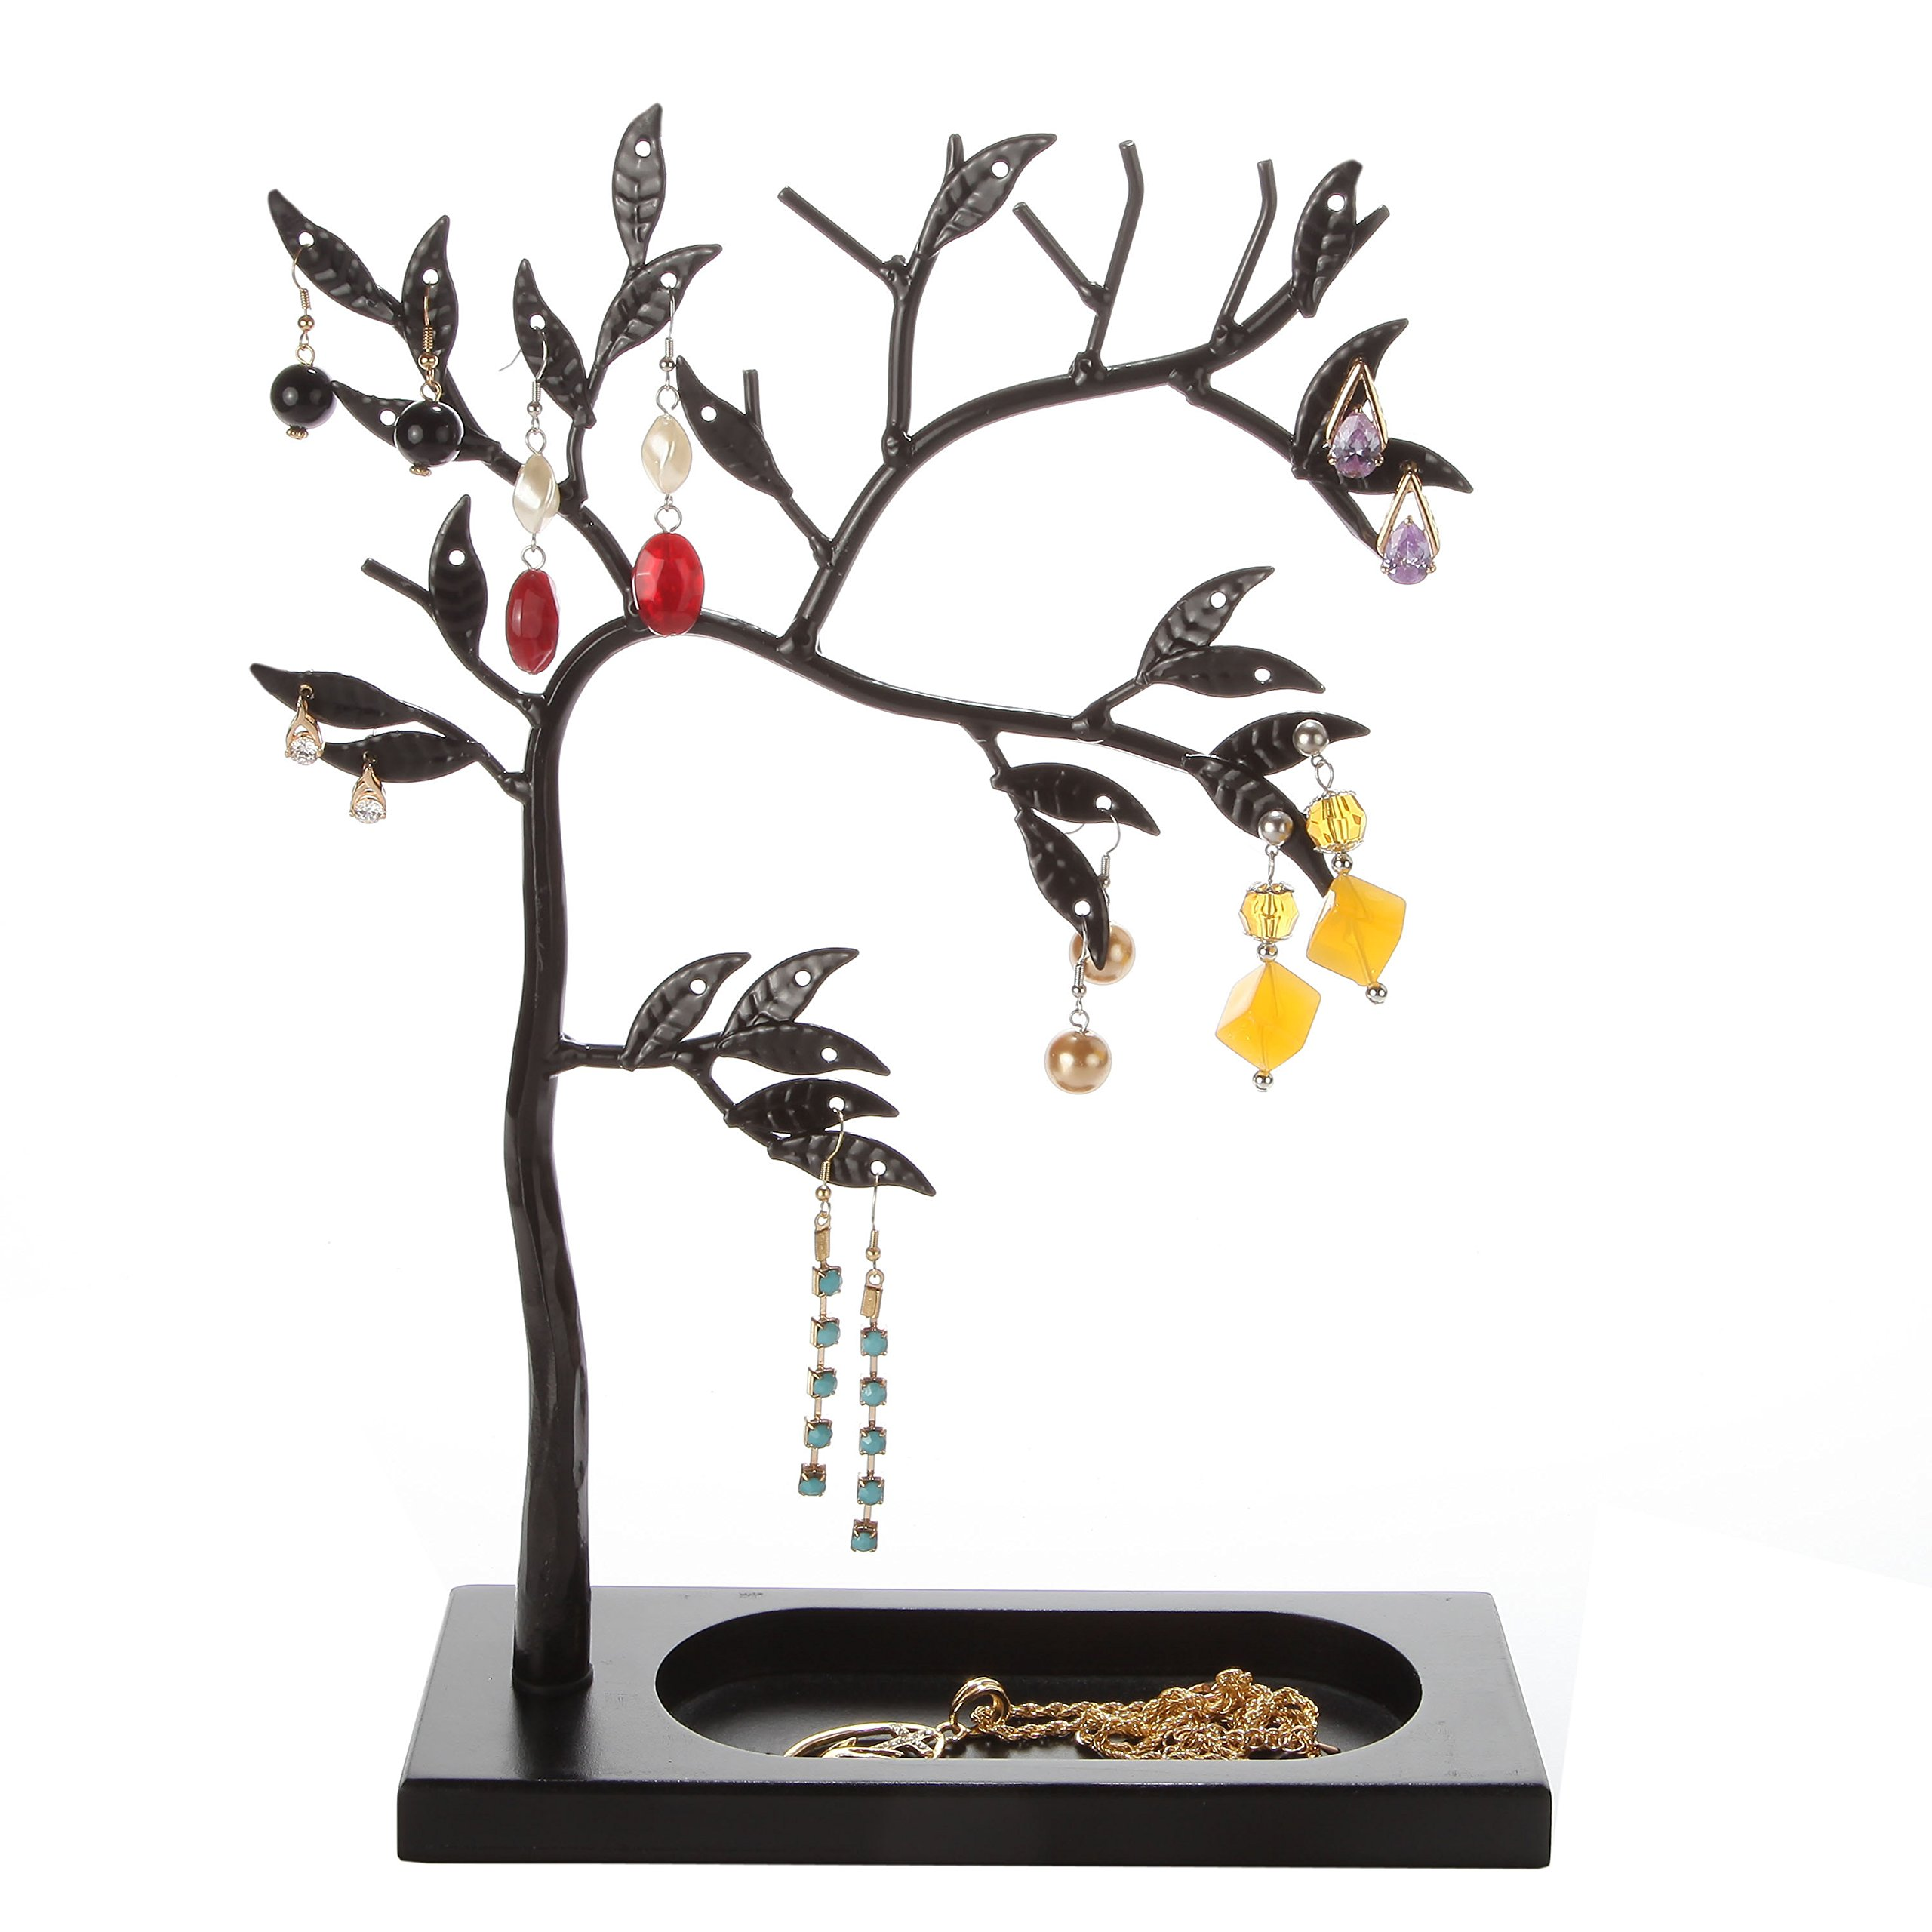 LilGift Metal Jewelry Tree / Jewelry Holder (BLACK)